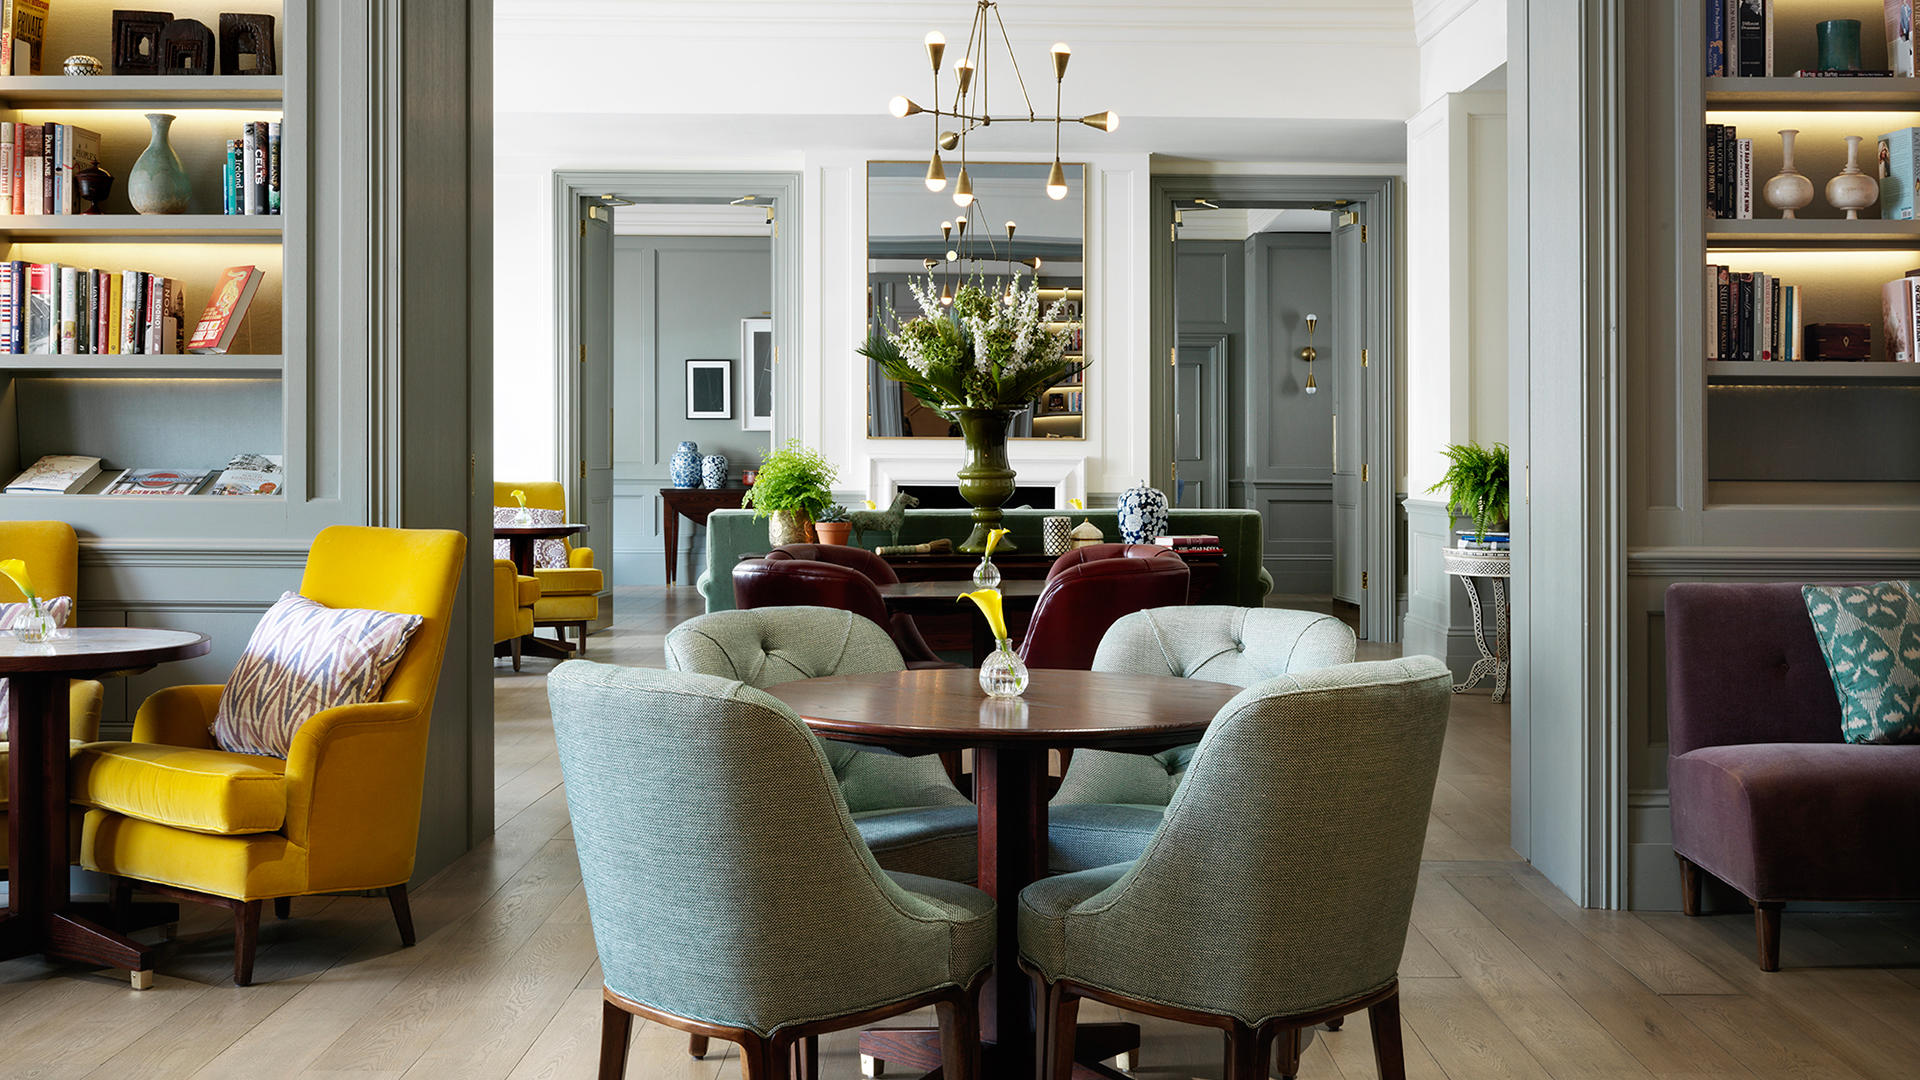 The Doyle Collection Hotels in London: find 11, traveler reviews, candid photos, and prices for 3 The Doyle Collection Hotels in London, England.